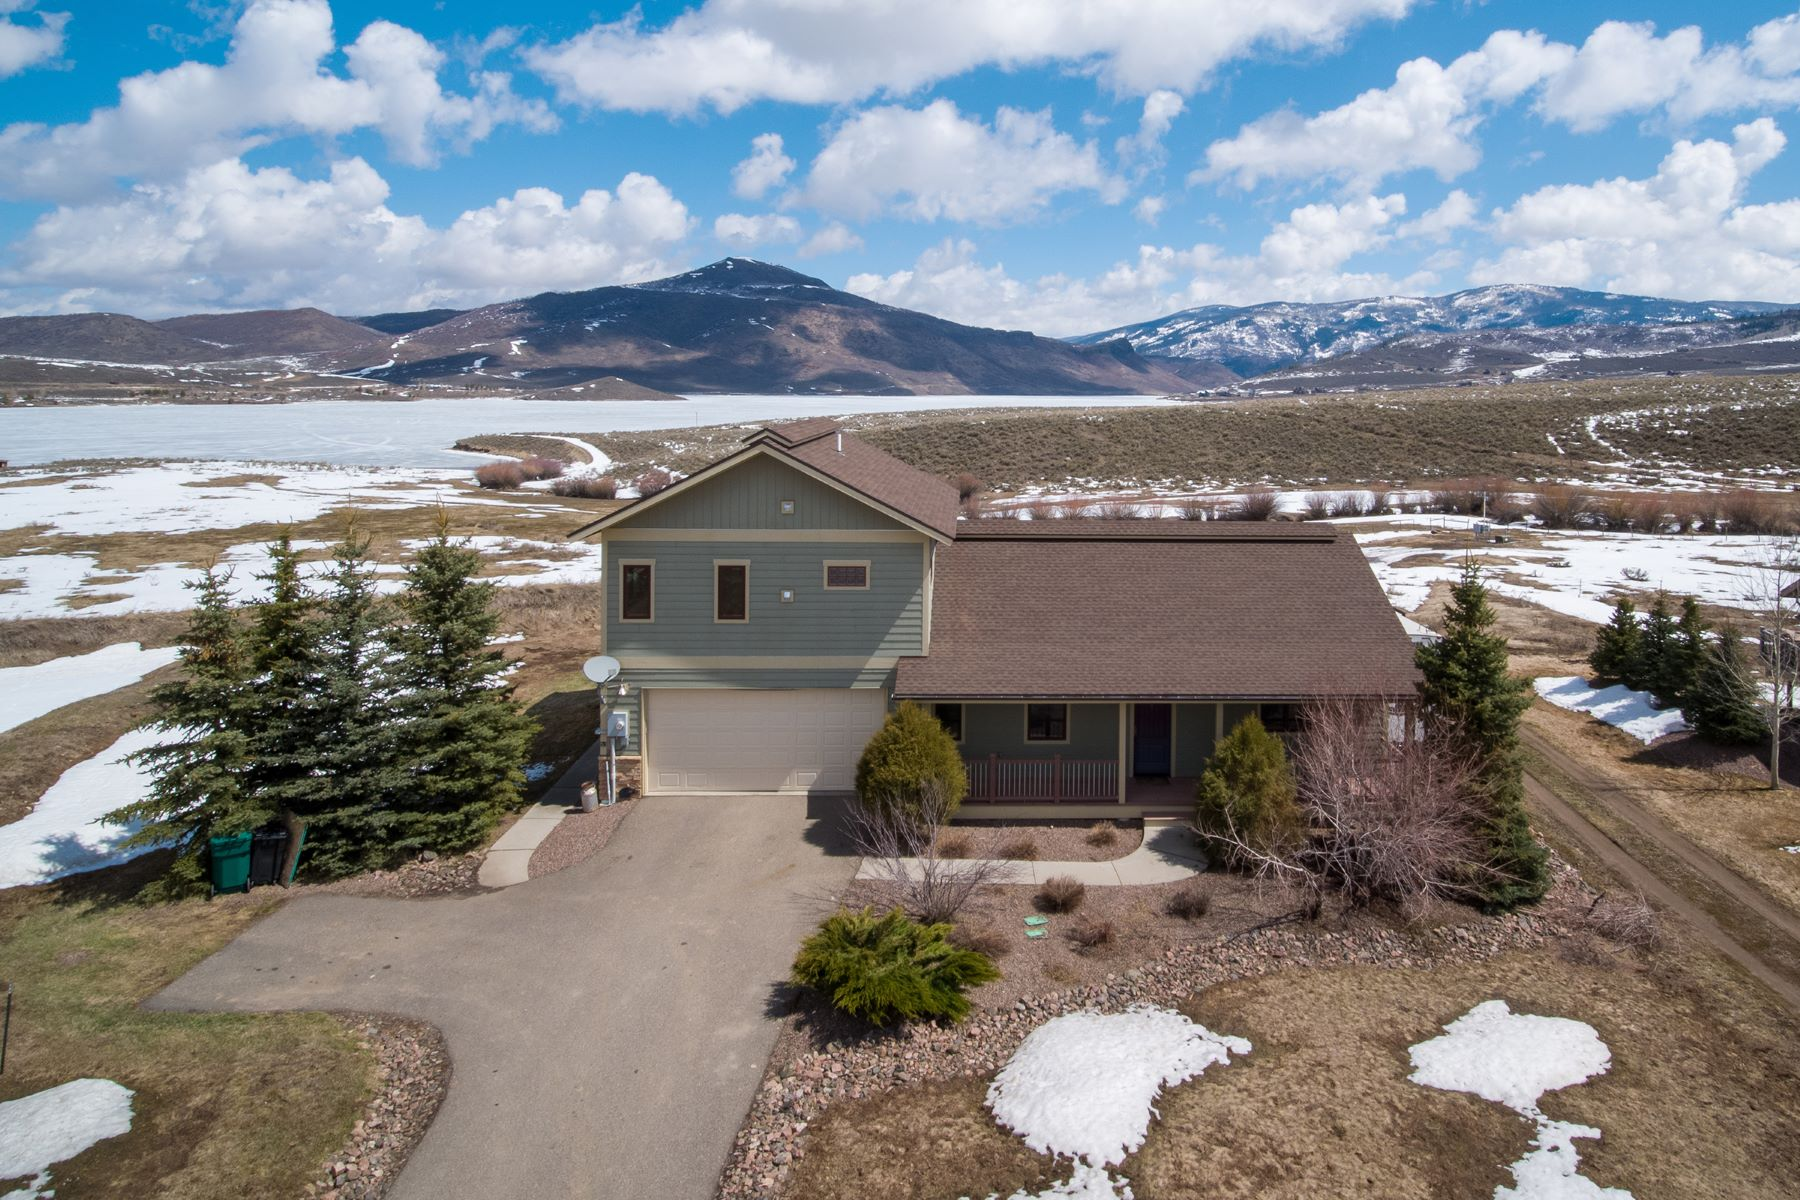 Single Family Homes for Active at Home with Lake Views 30080 Bannock Trail Oak Creek, Colorado 80487 United States